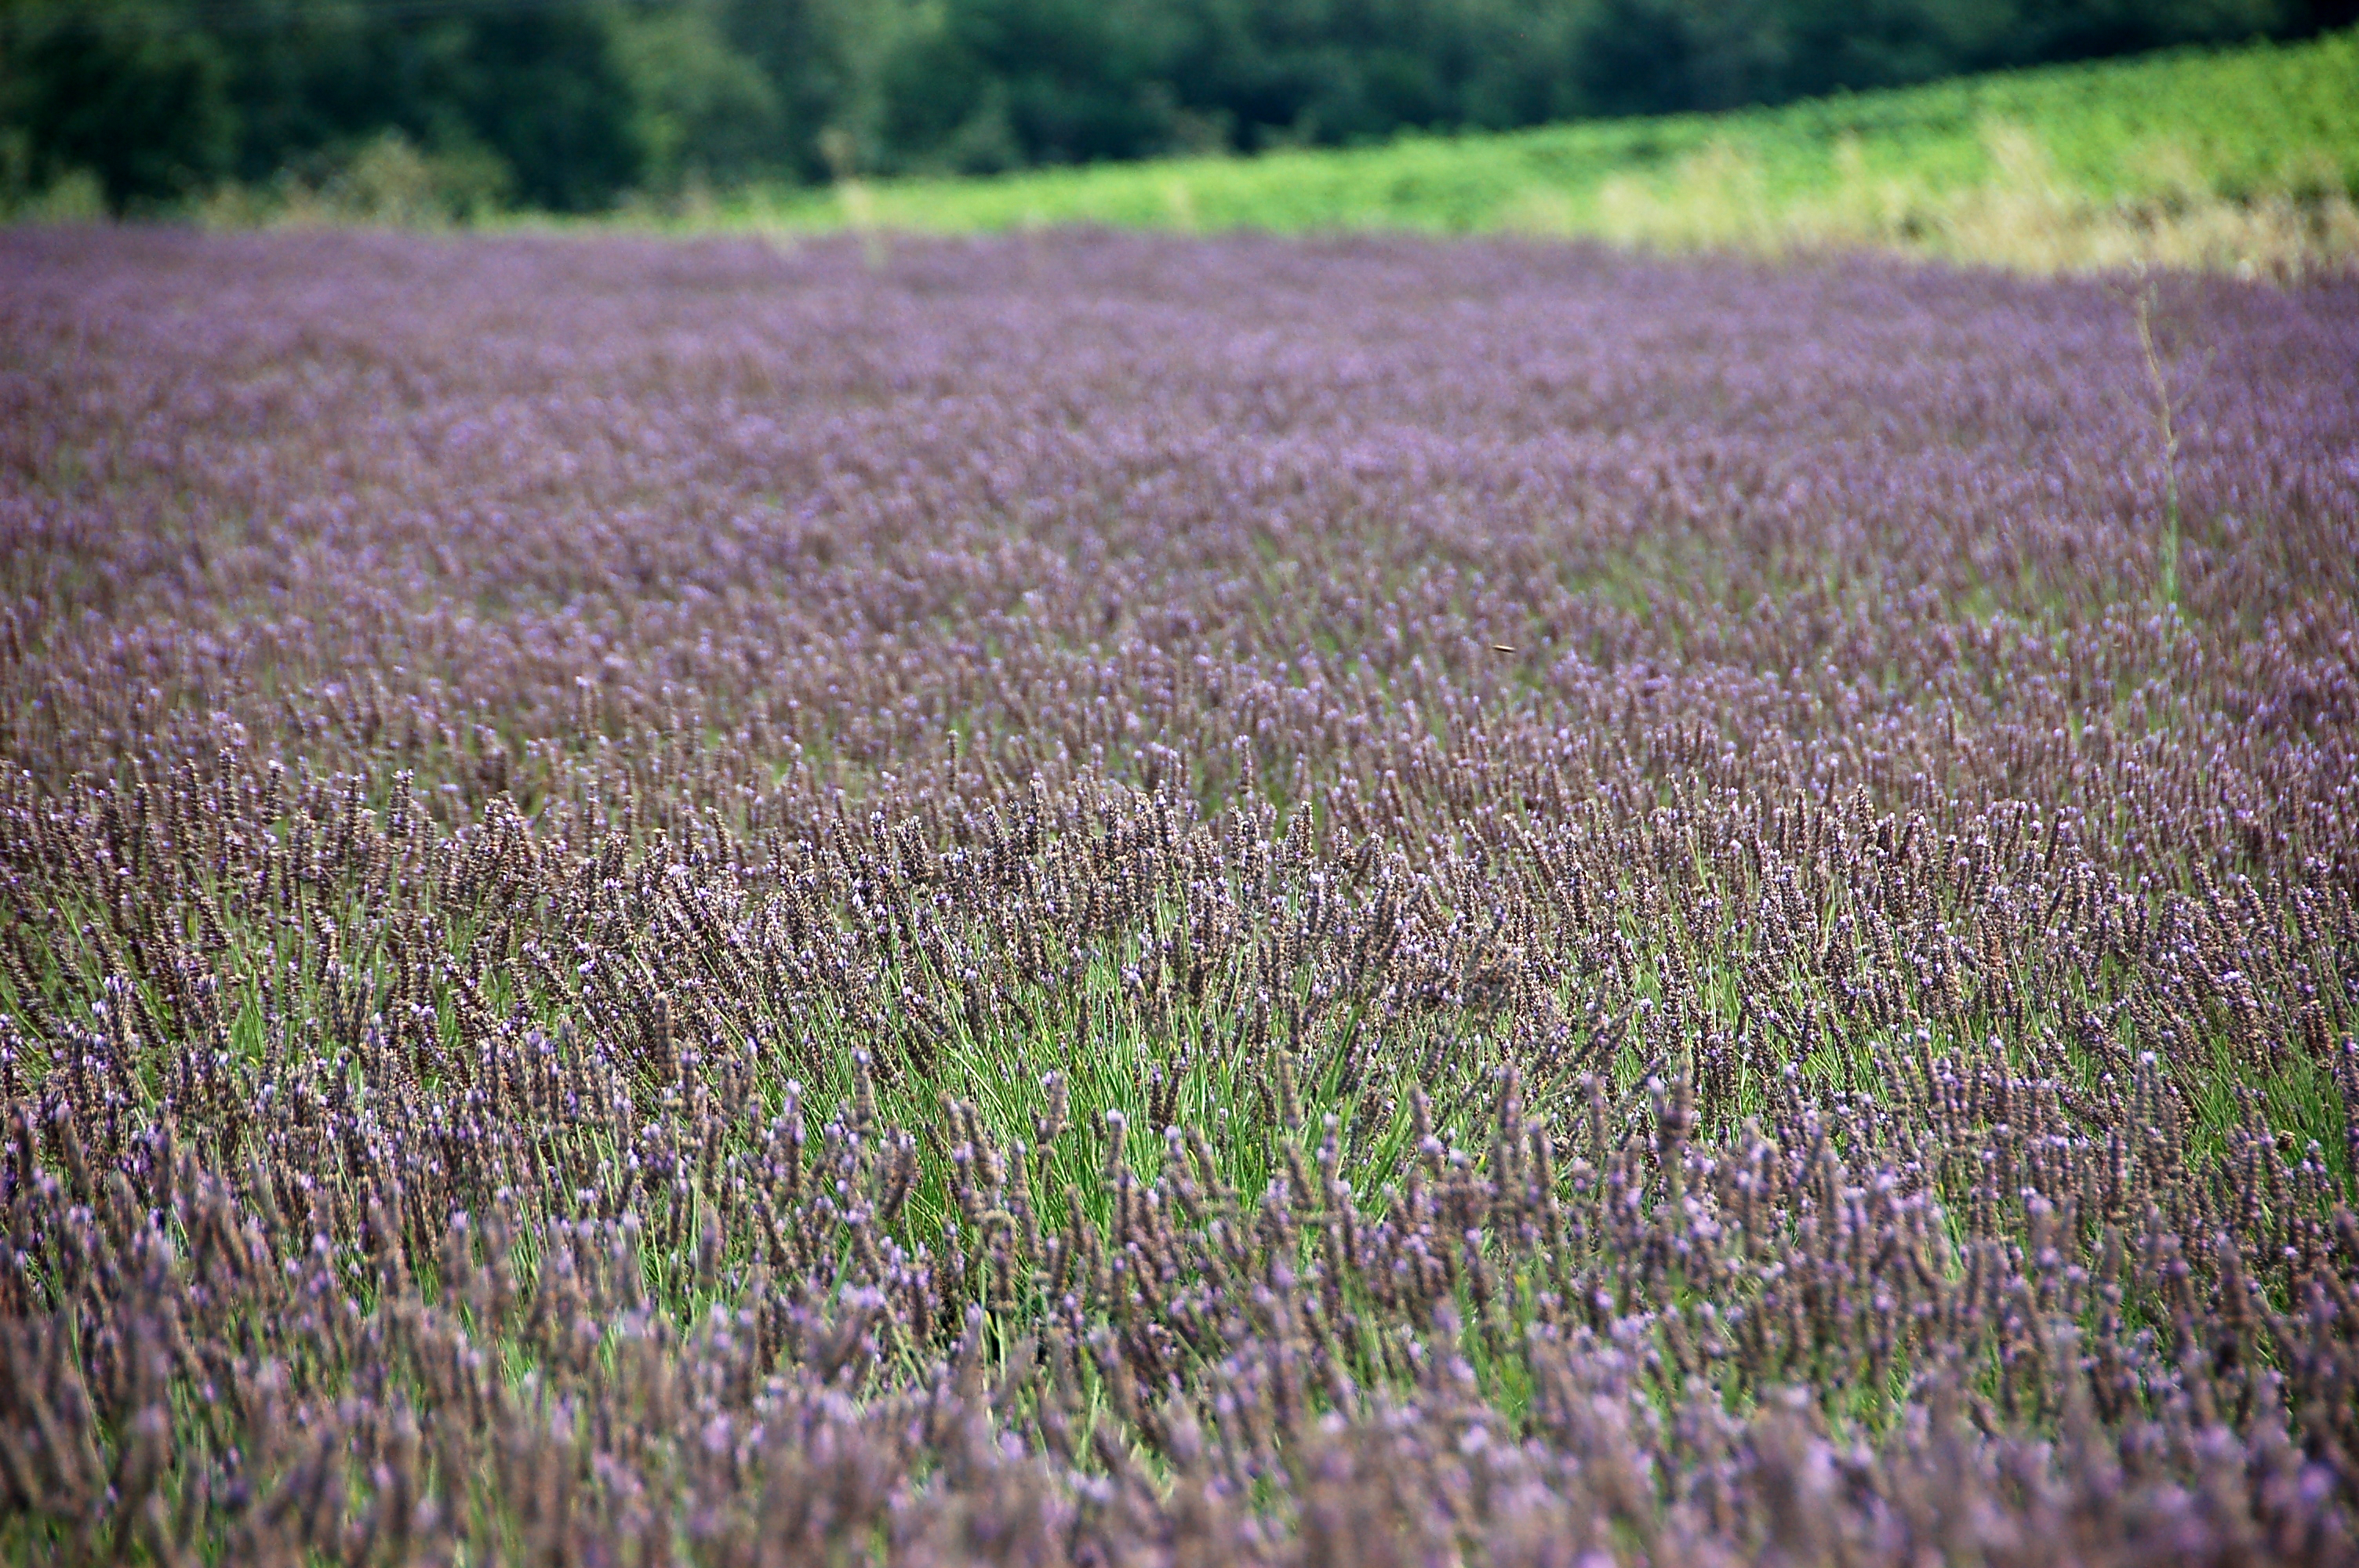 A field of purple lavender flowers.